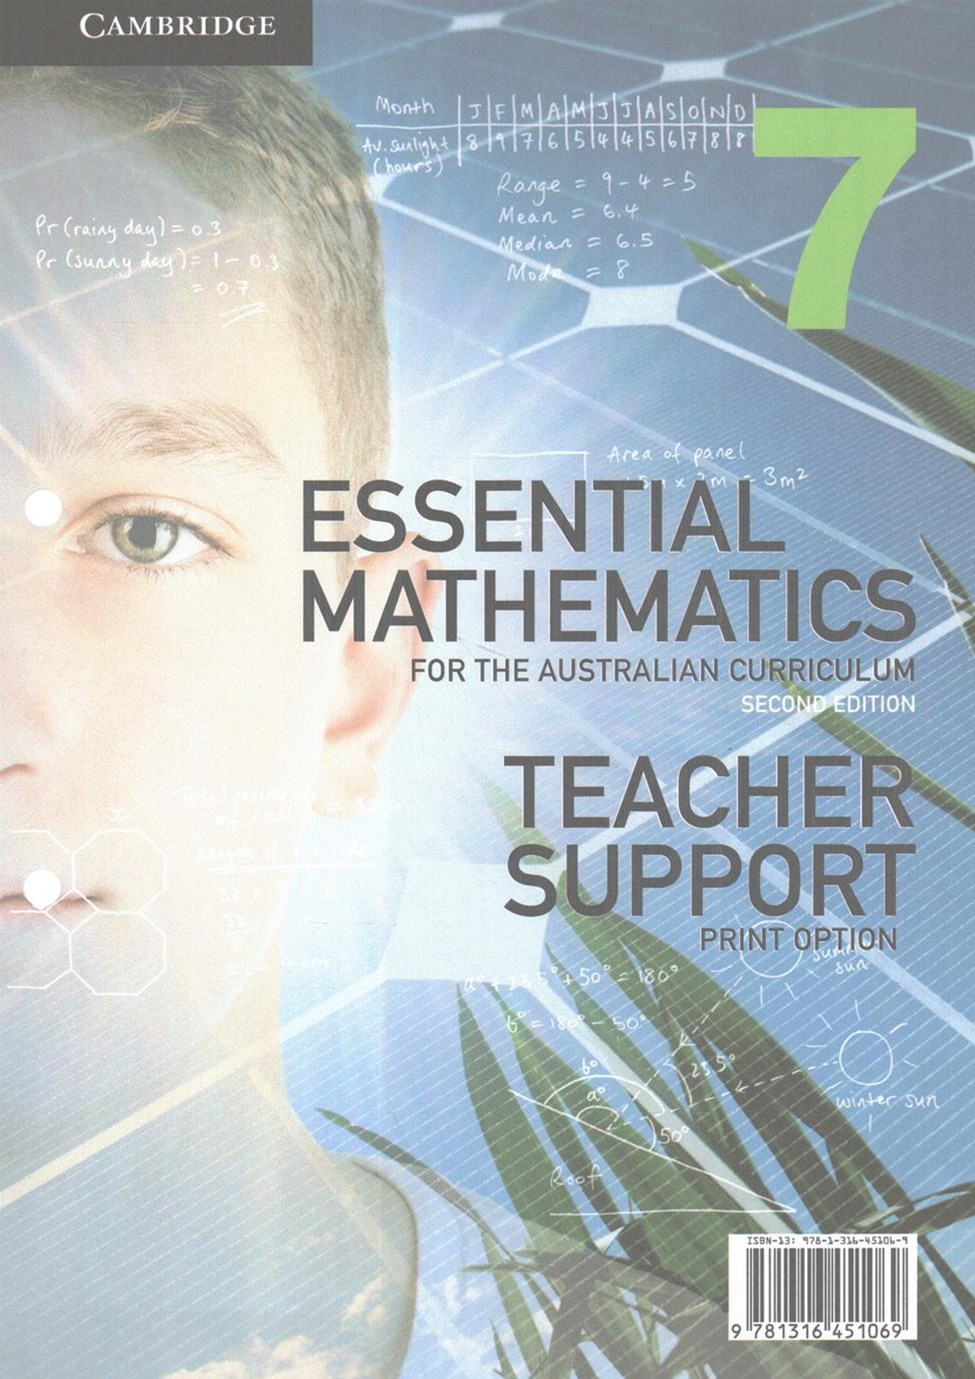 Essential Mathematics for the Australian Curriculum Year 7 2ed Teacher Support Print Option